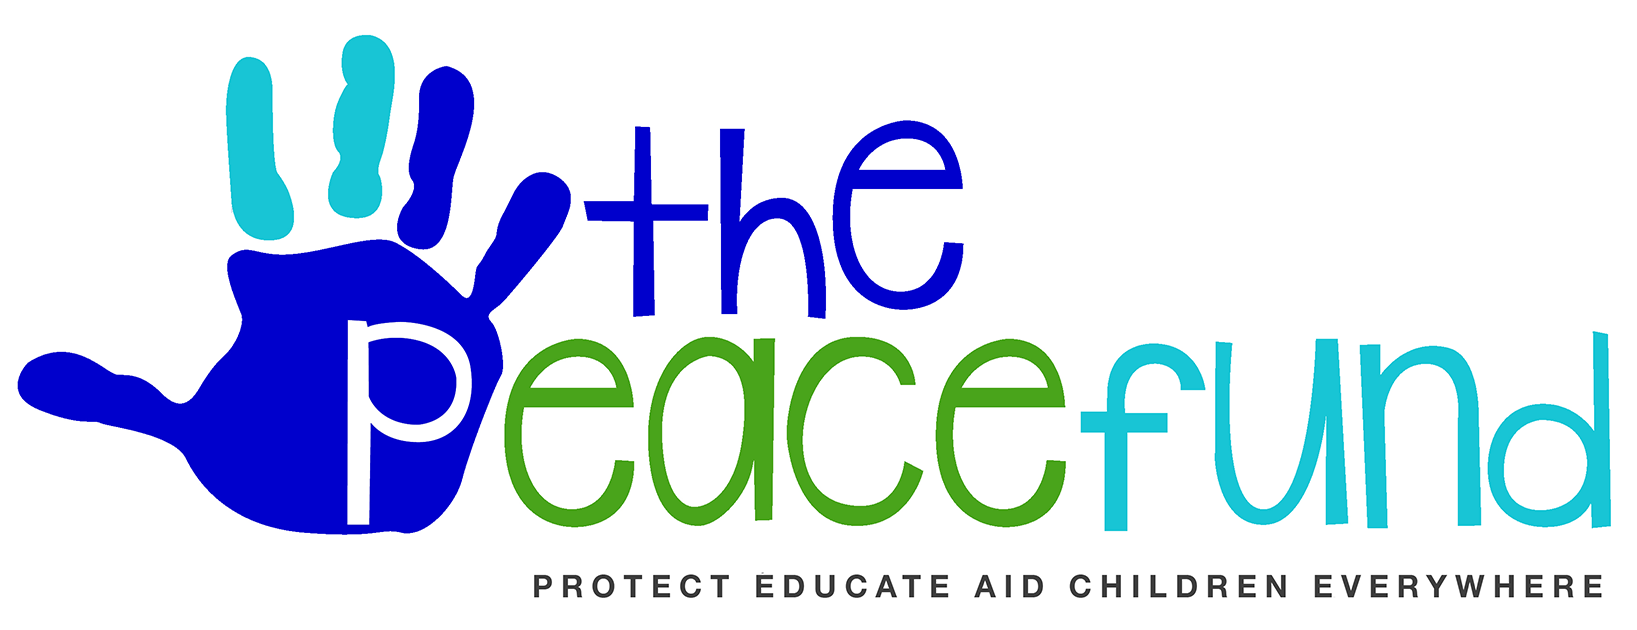 (c) Thepeacefund.org